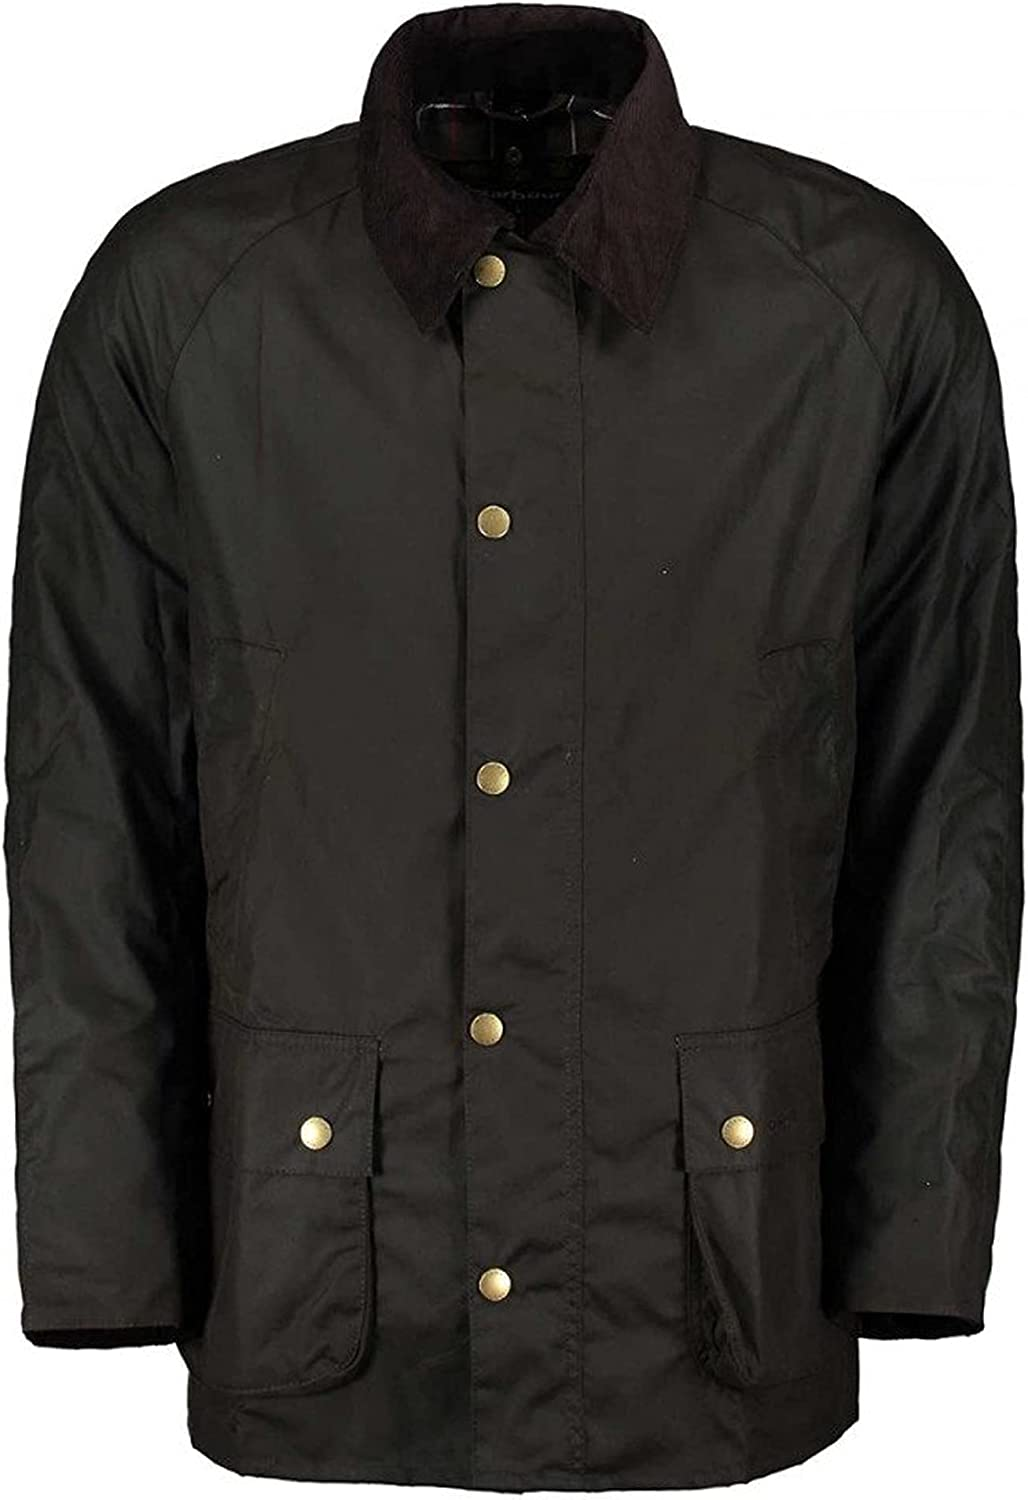 Barbour Men's Ashby Waxed shopping Recommendation Jacket Cotton